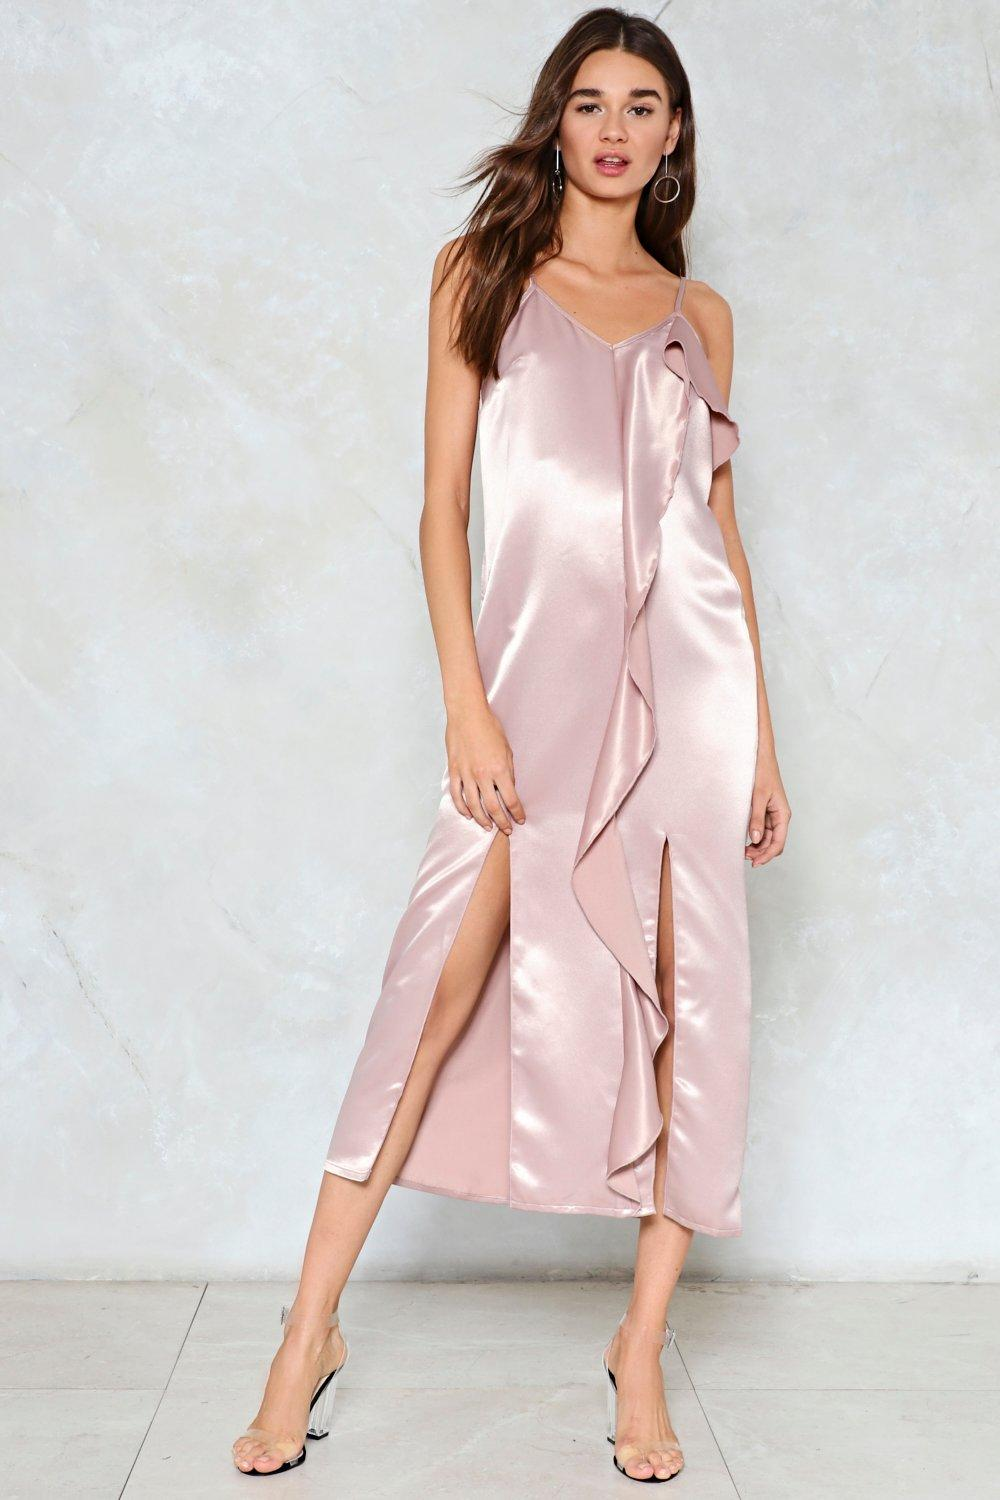 ad61e2971df Let Your Love Flow Satin Slip Dress